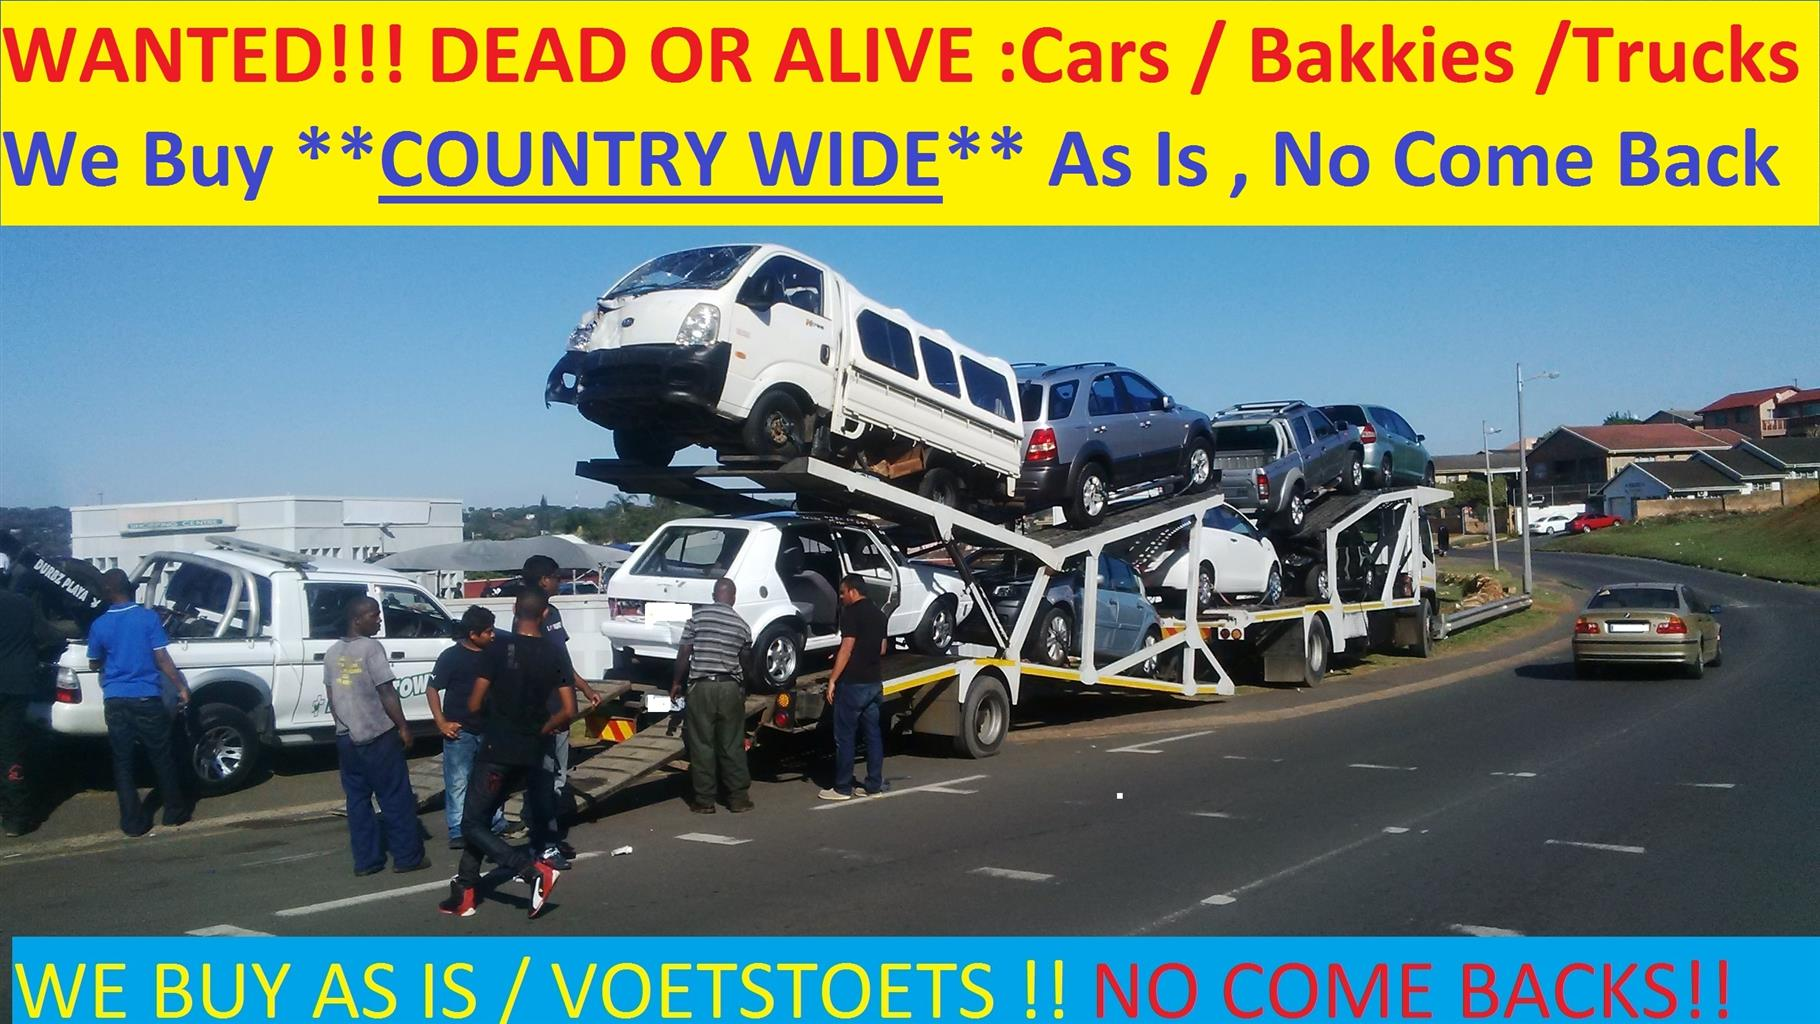 WANTED!!! WANTED!!! WANTED!!! -  dead or alive - Cars and bakkies countrywide!!